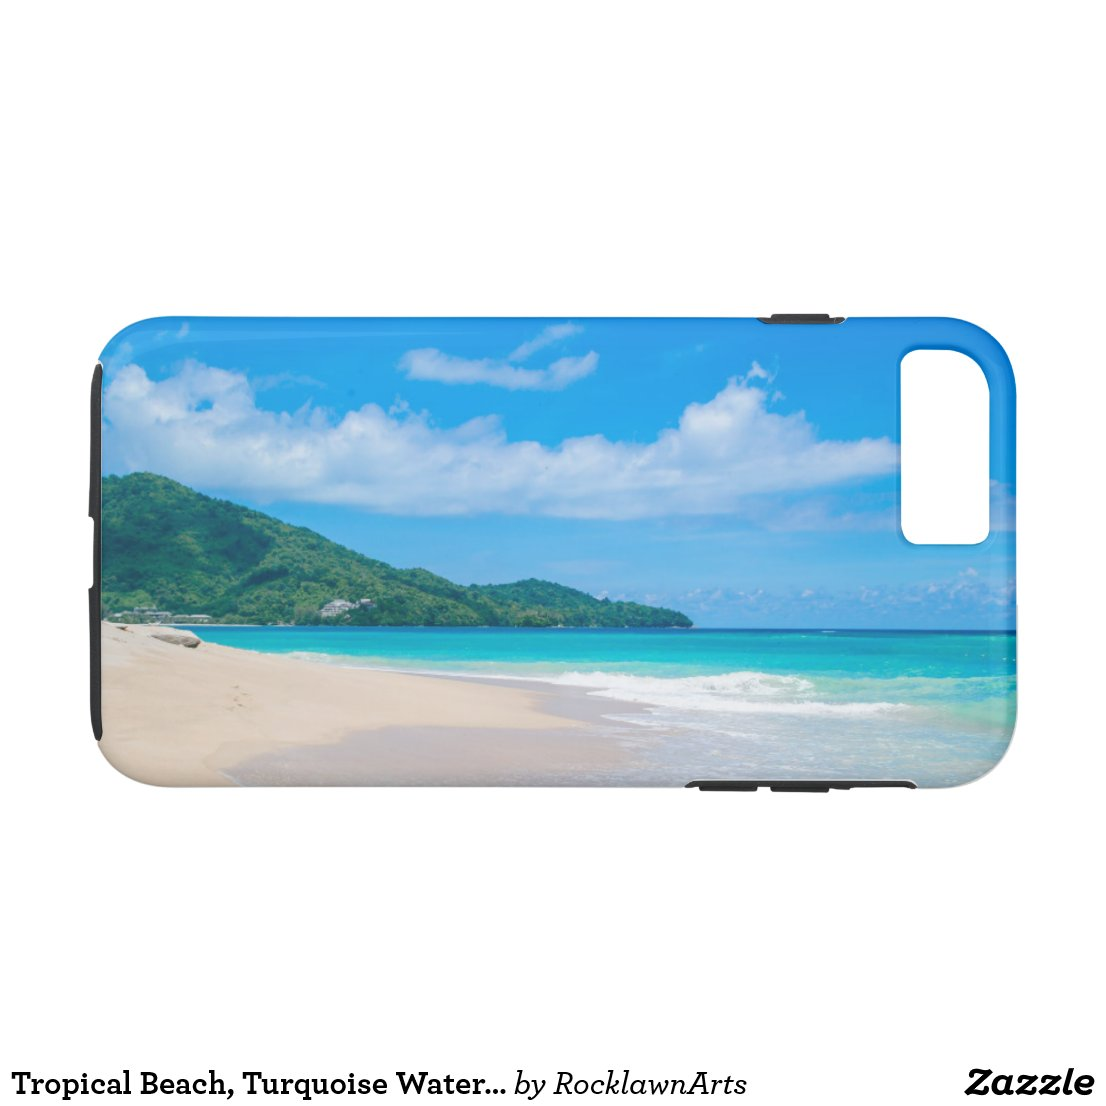 Tropical Island Beach Turquoise Water iPhone 8 Plus/7 Plus Case